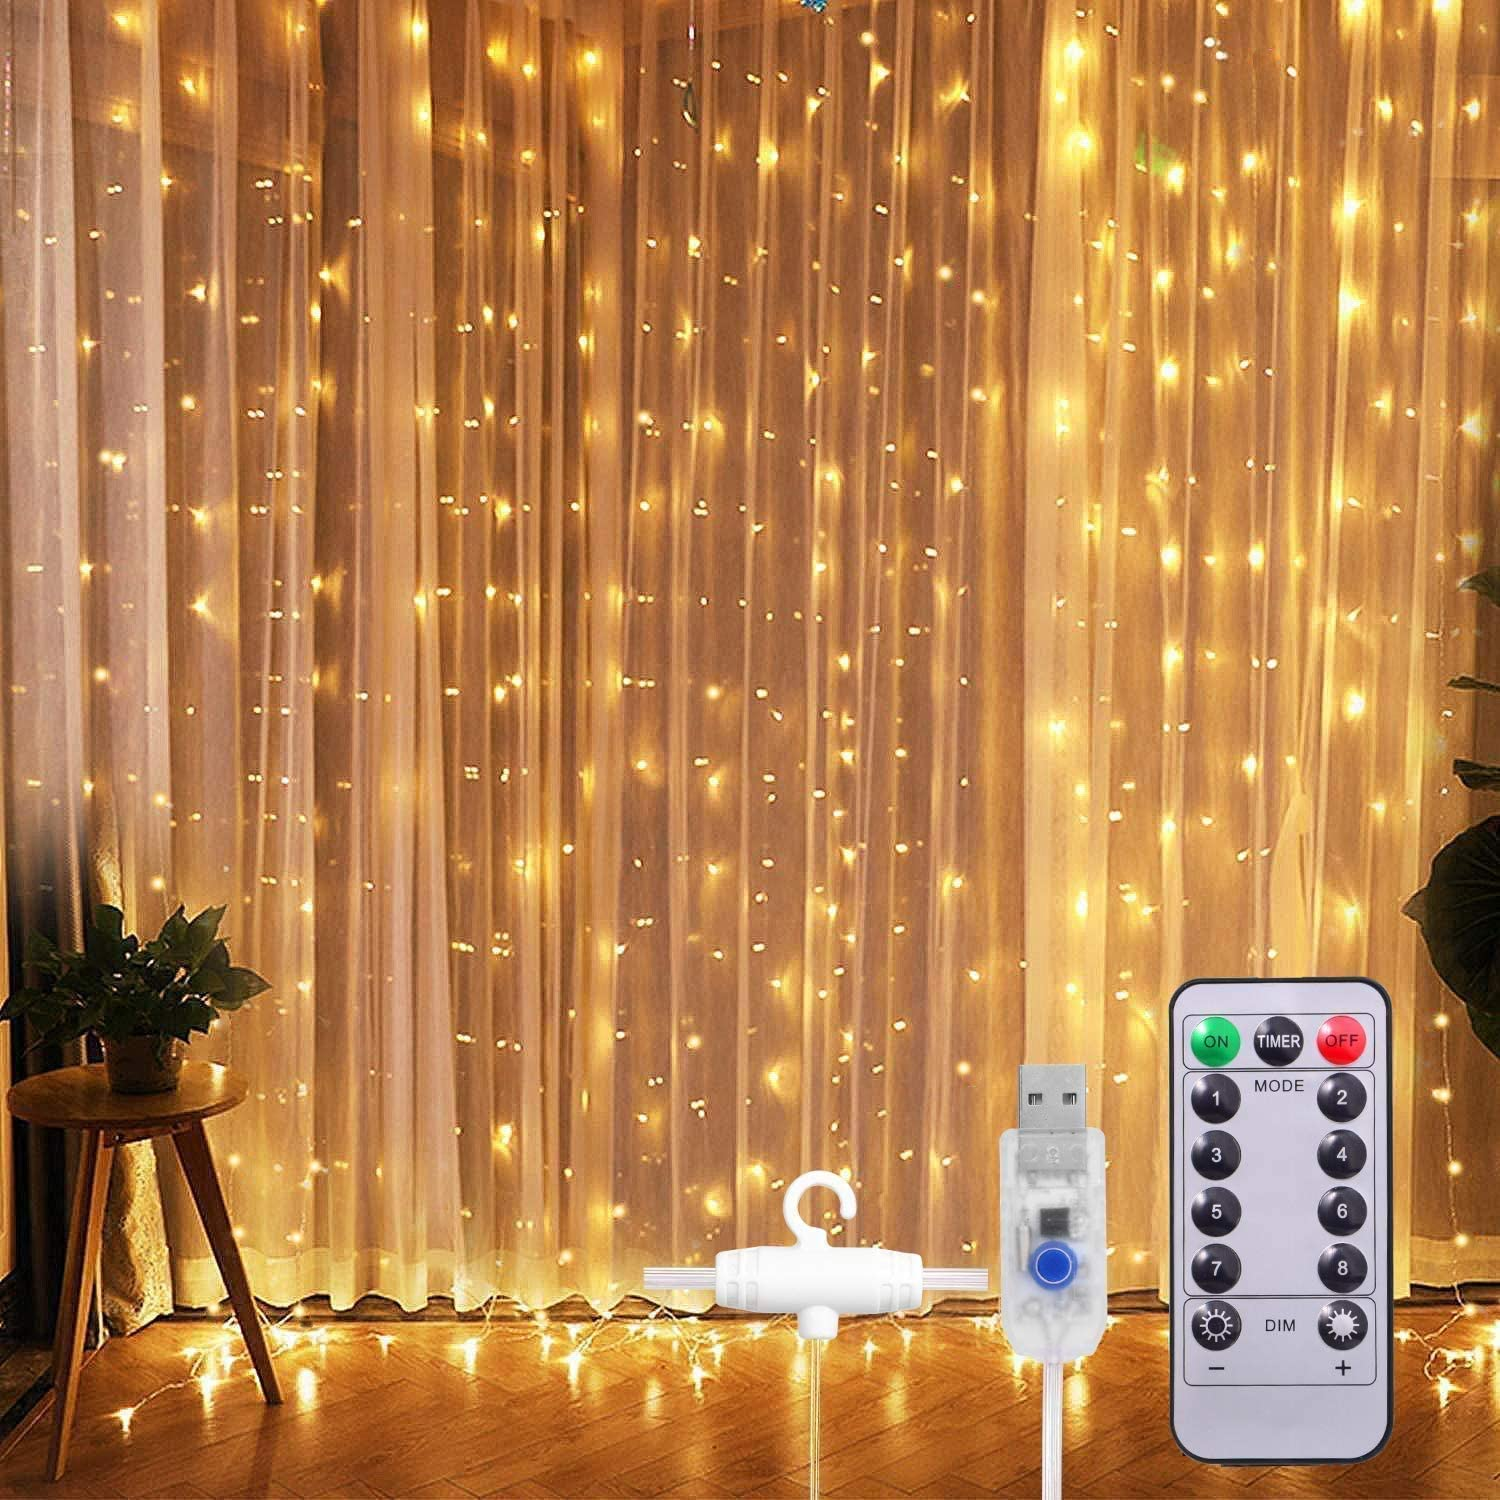 Curtain String Lights, WedTex Curtain Lights with Remote, 300 LED Lamp Beads, 8 Lighting Modes, IPX6 Waterproof, Great for Bedroom/Party/Wedding/Garden/Indoor/Outdoor/Home Decor (Warm White Light)